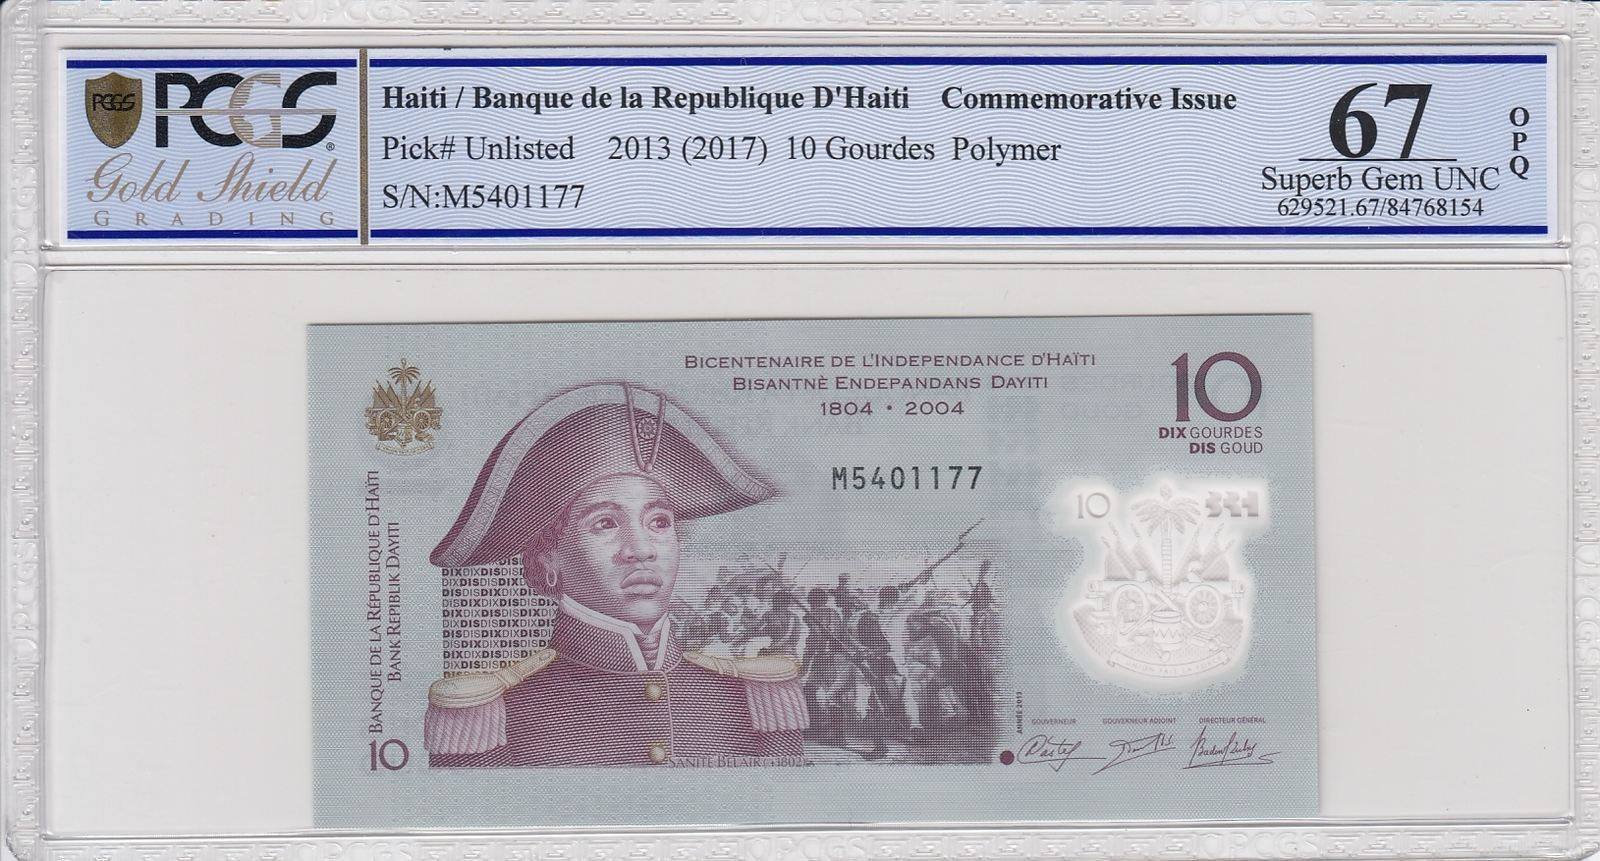 Unc Not Issued Polymer 2017 Haiti Pick New 10 Gourdes 2013